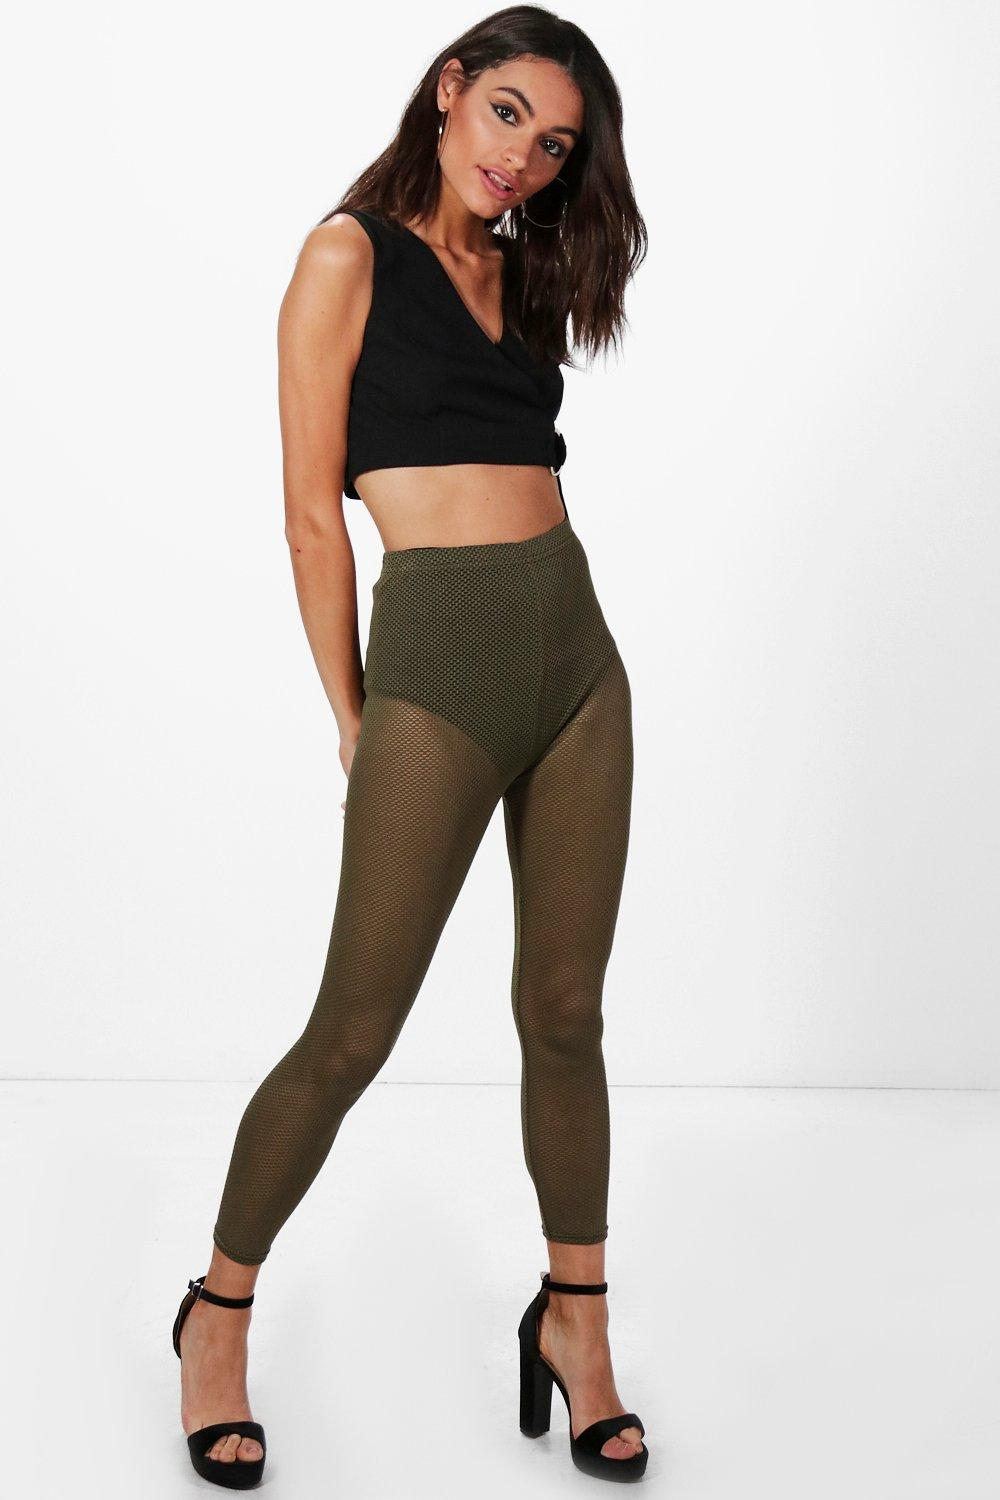 Kora Sheer Mesh Ankle Grazer Leggings khaki